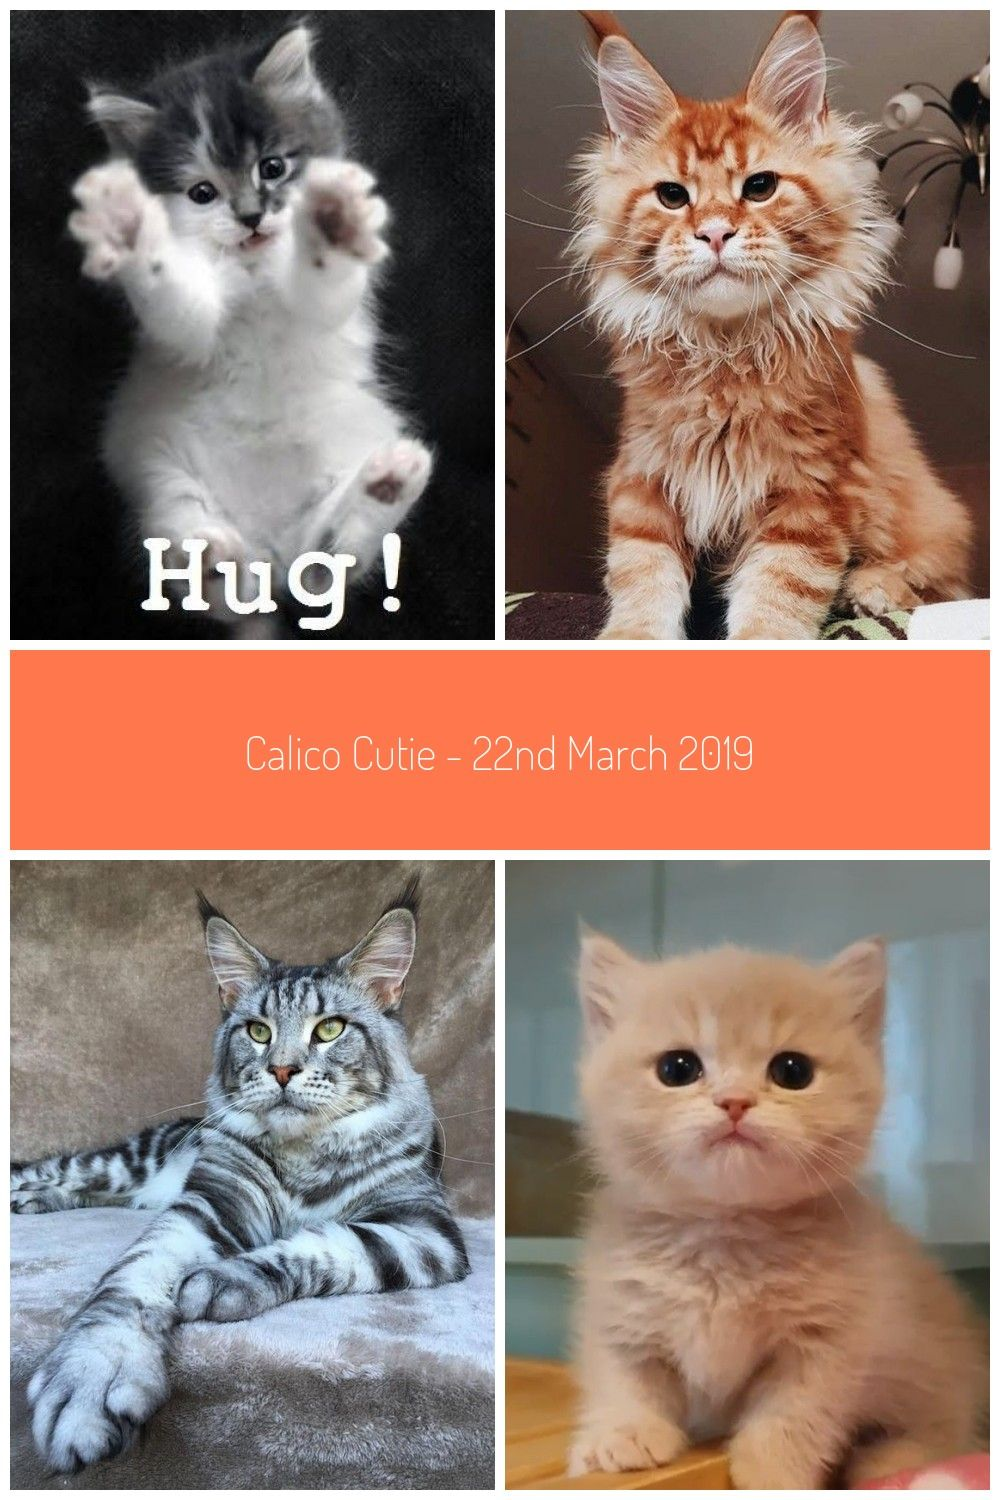 Yes Please Hugs Cats Kittens Cuteanimals Kitty Cats And Kittens Calico Cutie 22nd March 2019 We Love Cats And Kittens In 2020 Cats And Kittens